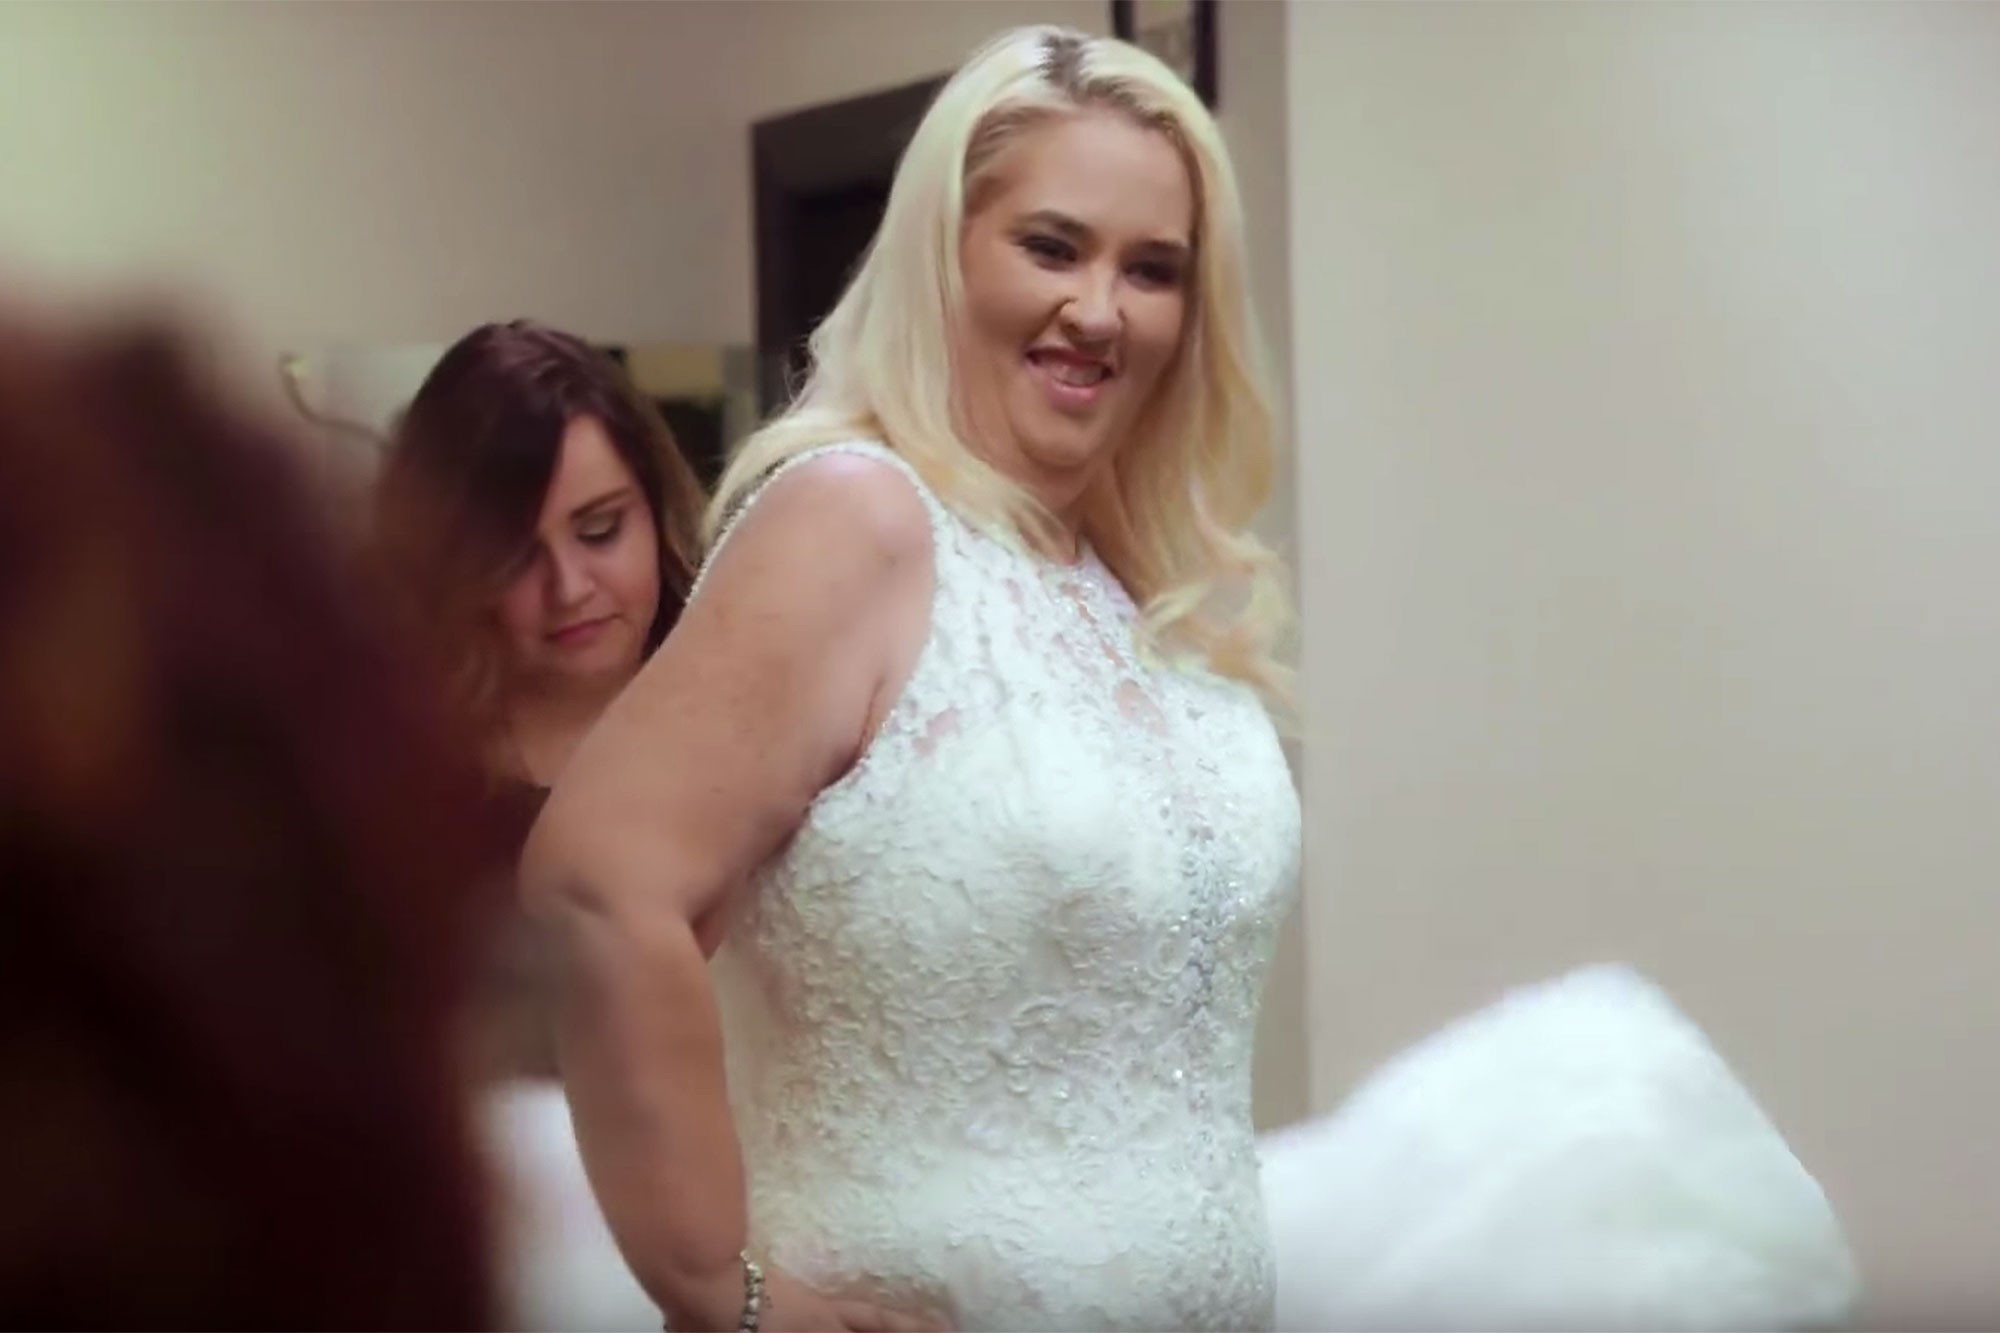 Mama June Shows Off Her Size 12 Figure In a Wedding DressCredit: WE tv